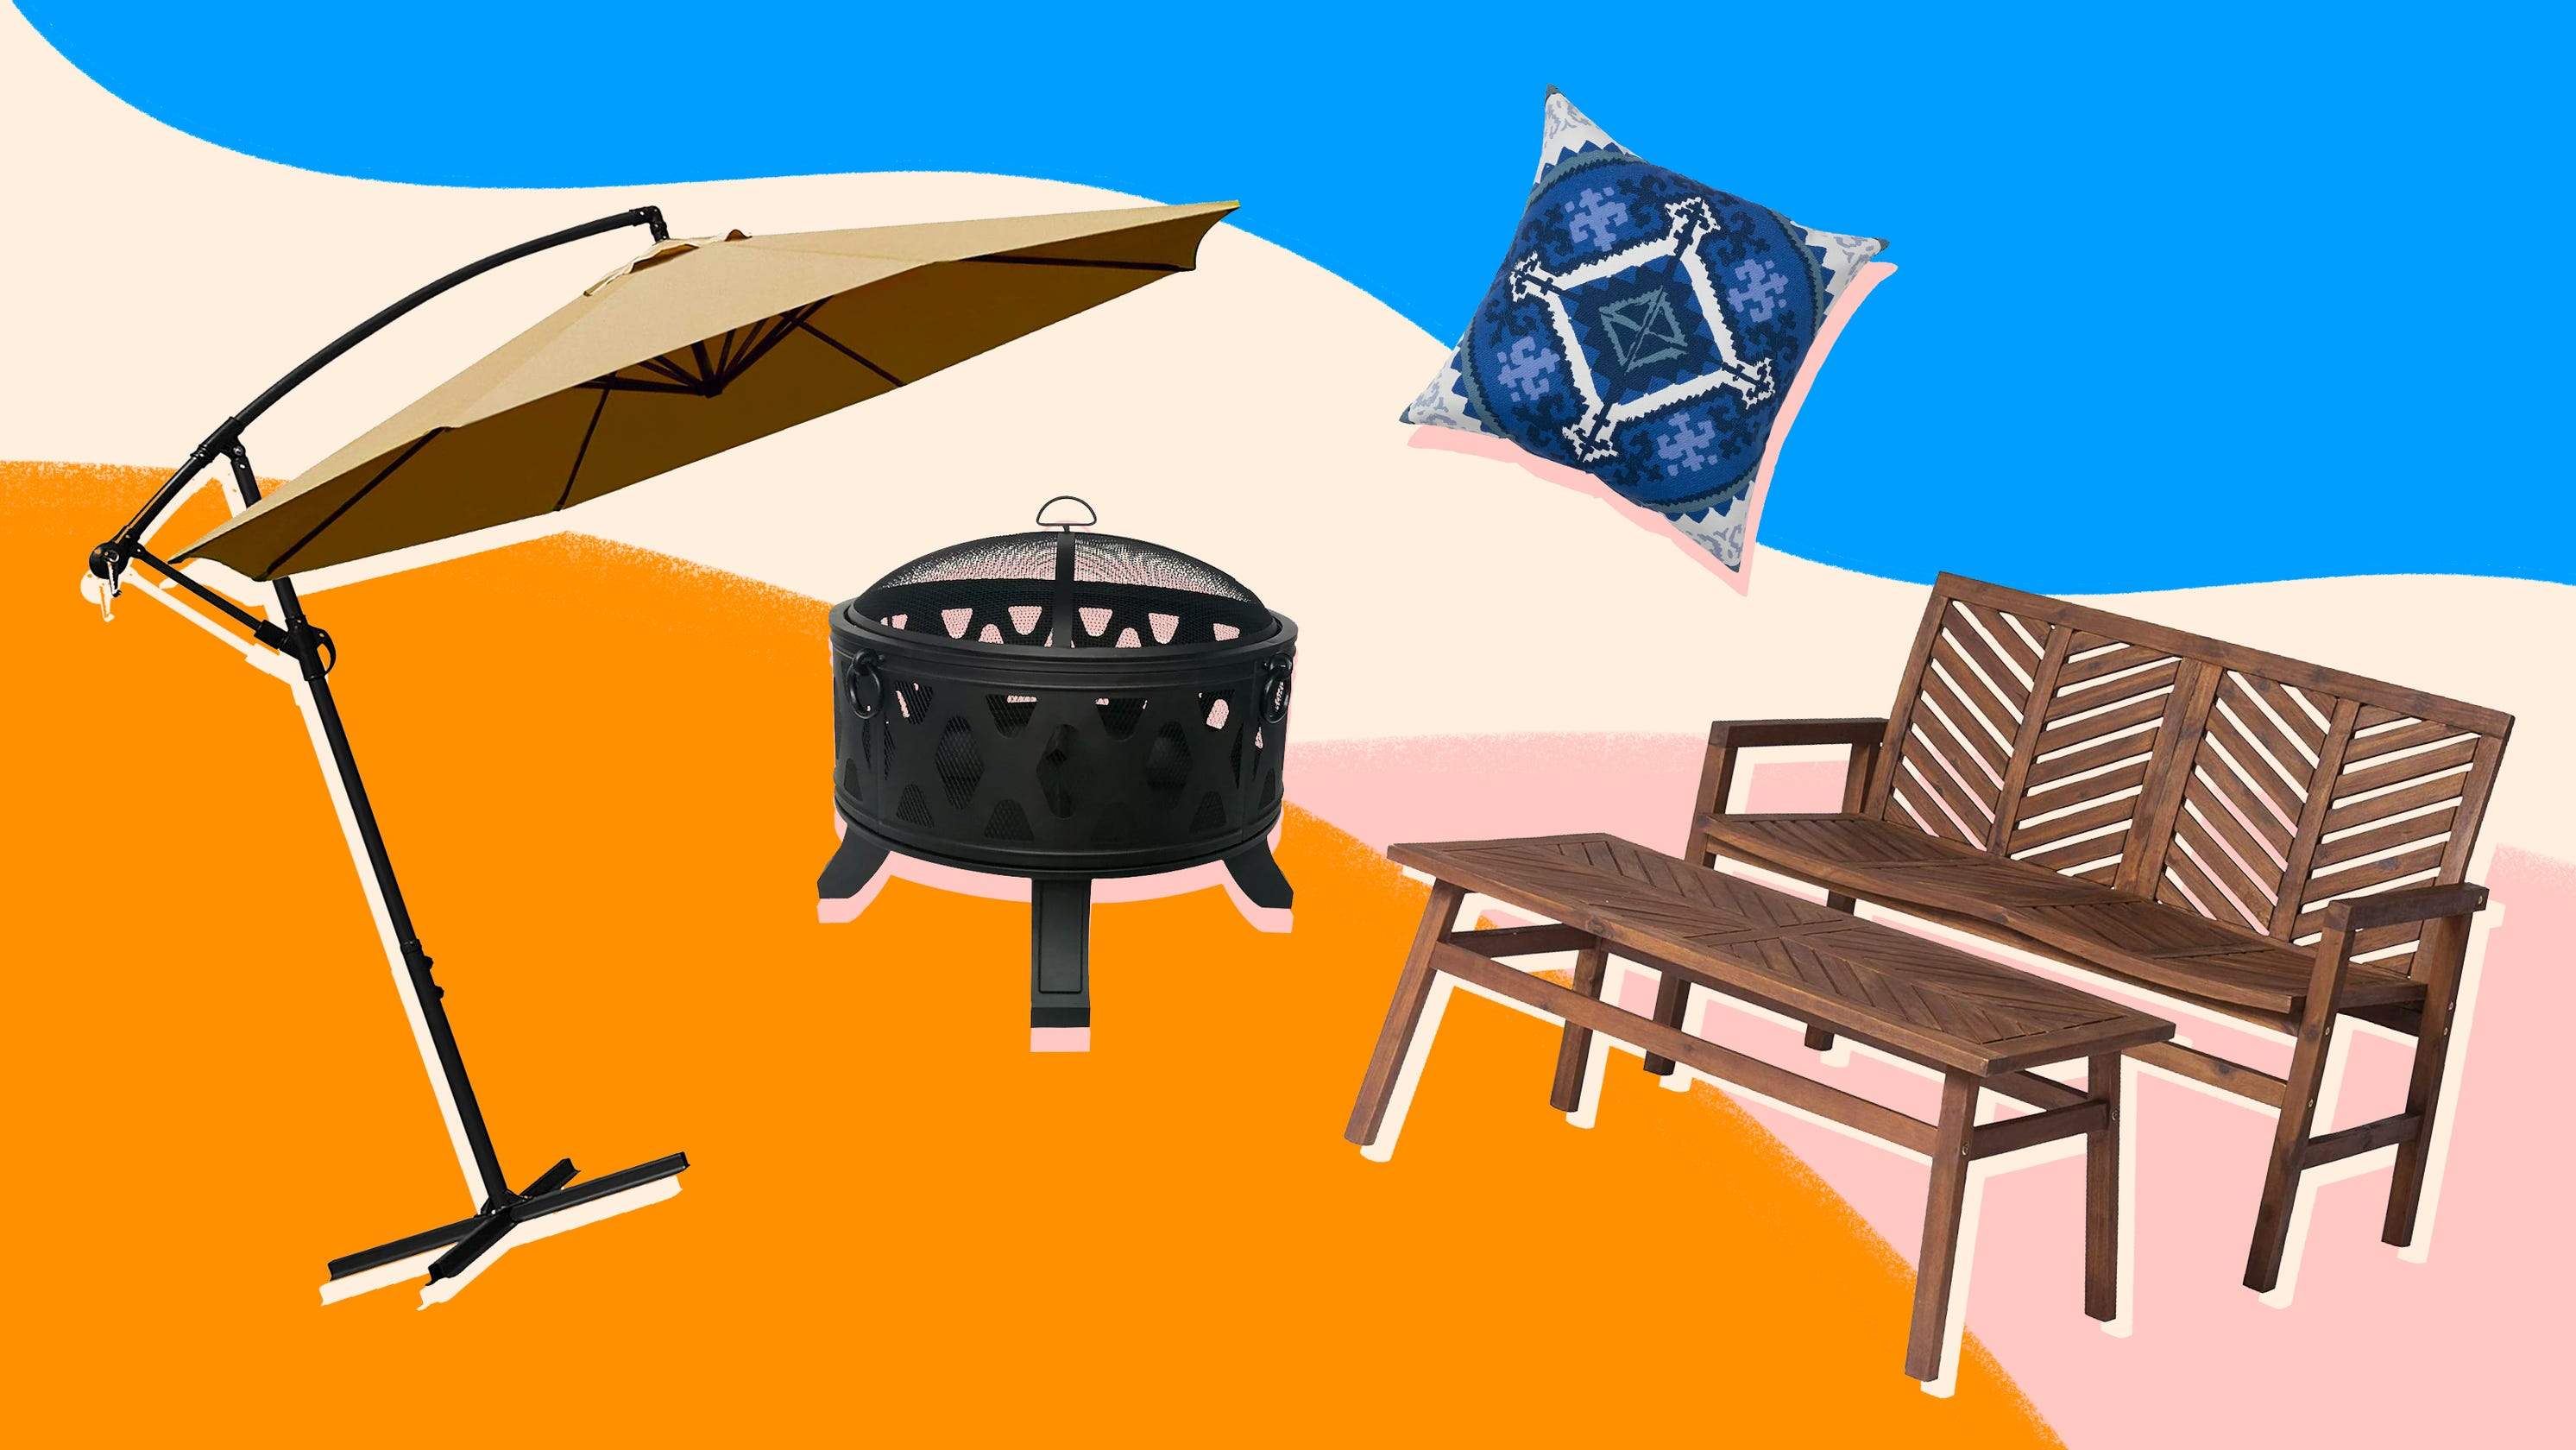 You can shop tons of discounted patio furniture during Amazon's huge Prime Day 2021 event